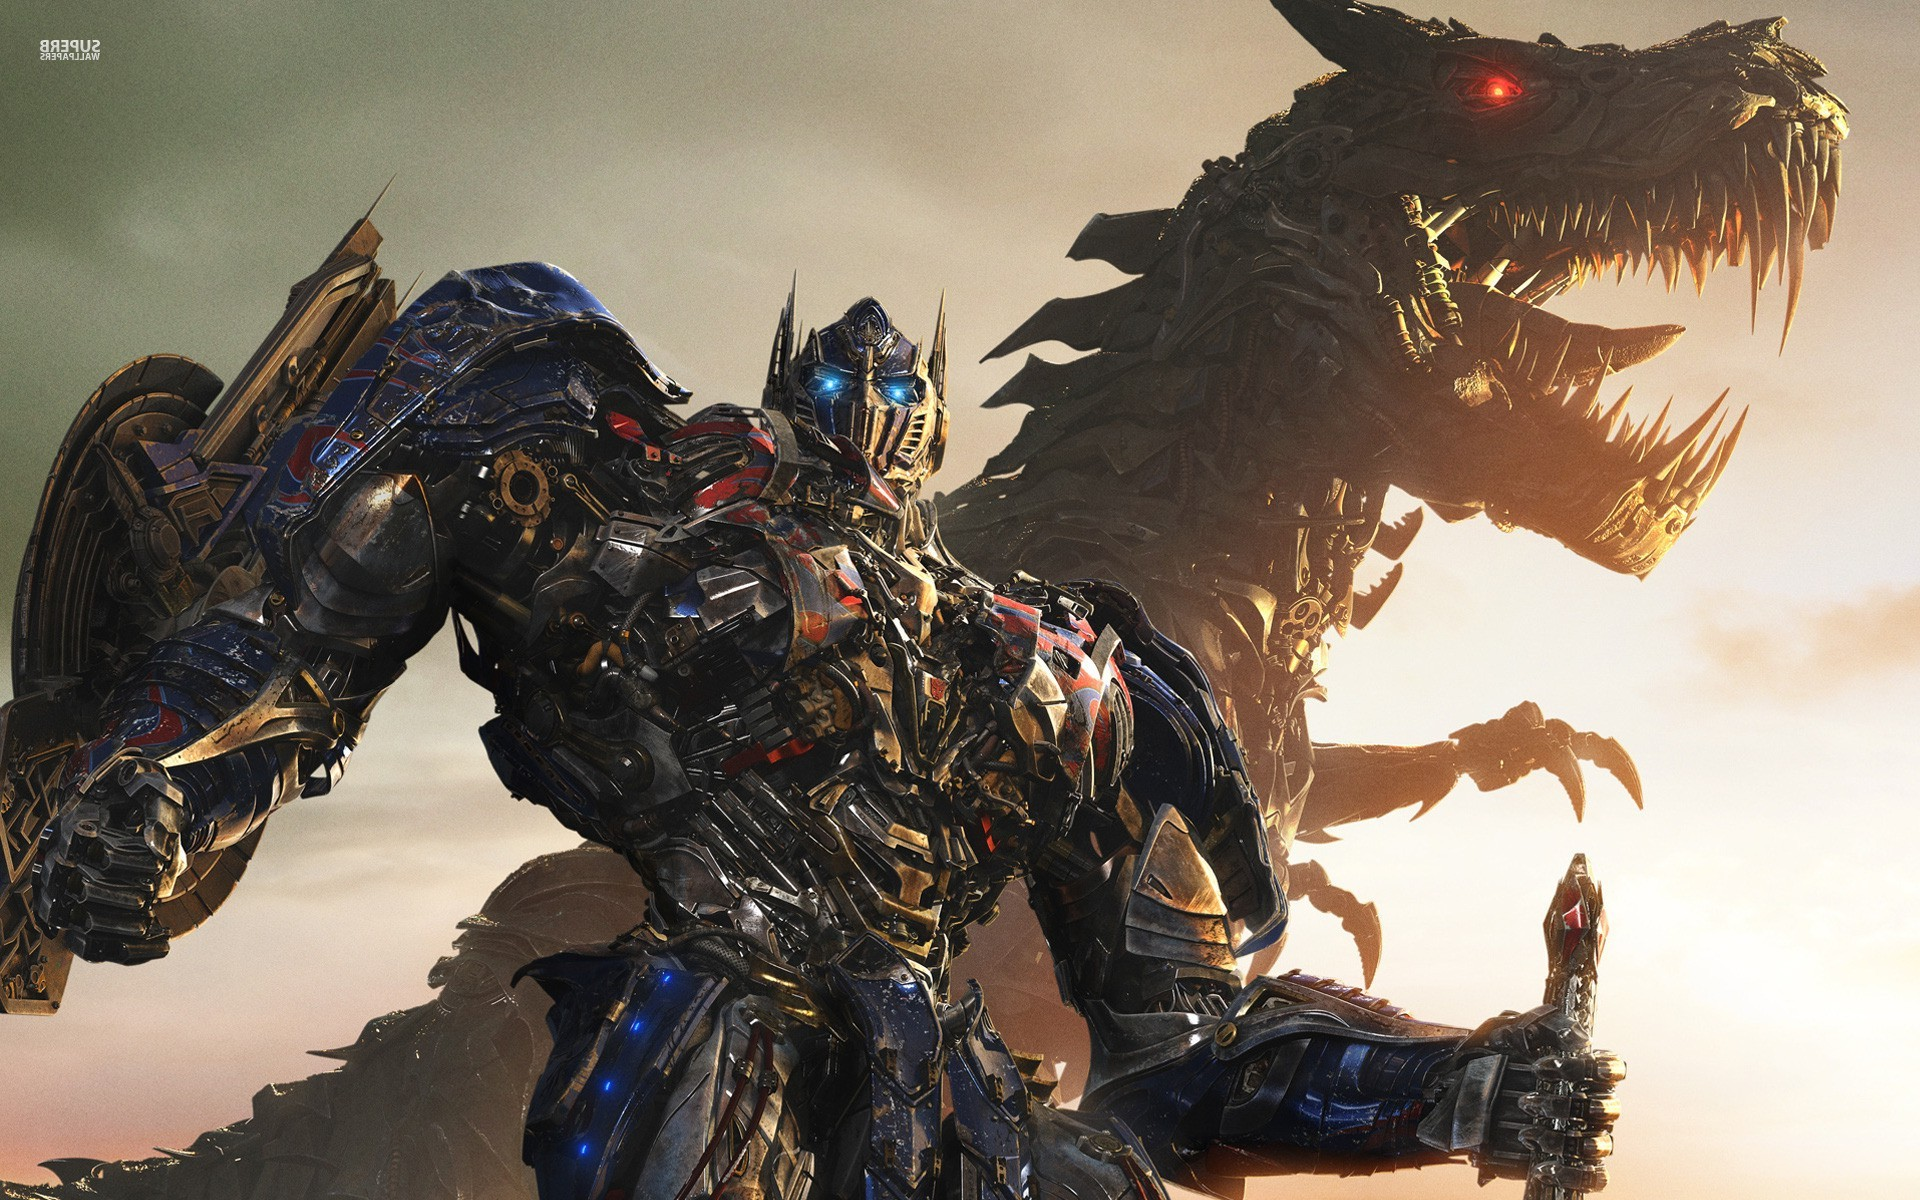 Transformers 5 Hd Wallpapers 1080p Download Transformers Age Of Extinction Transformers Movies